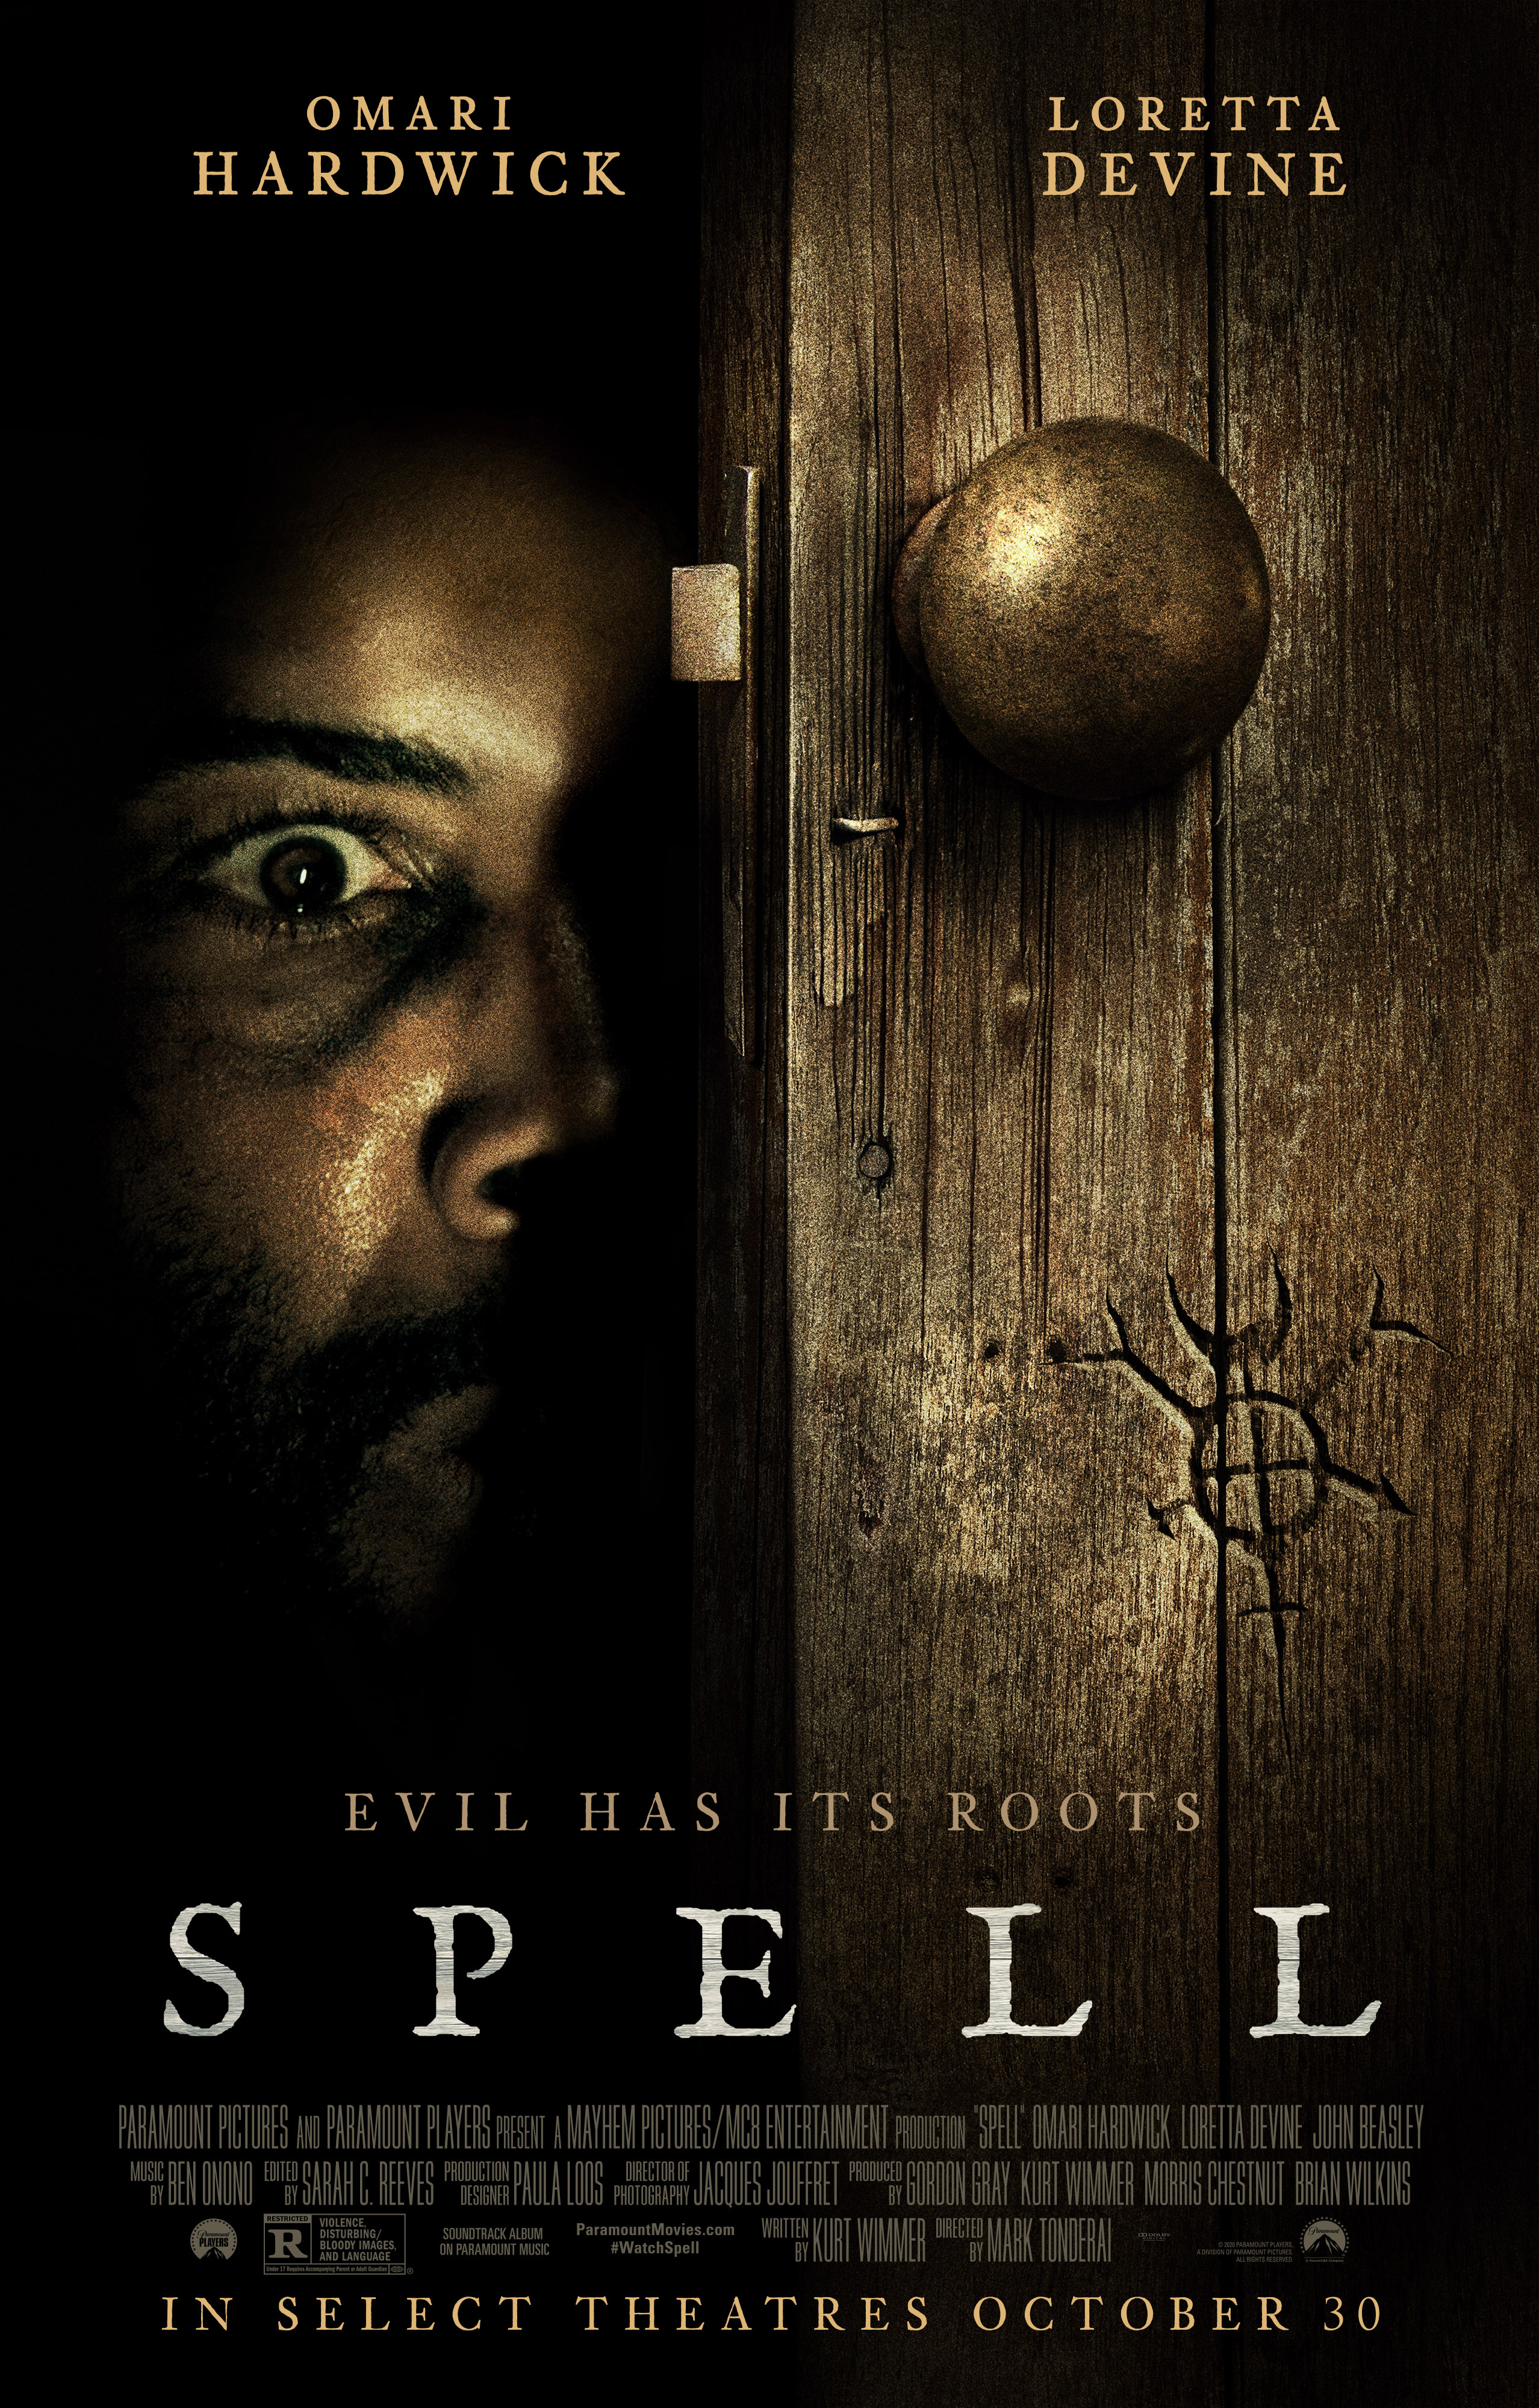 Download Filme Spell Torrent 2021 Qualidade Hd